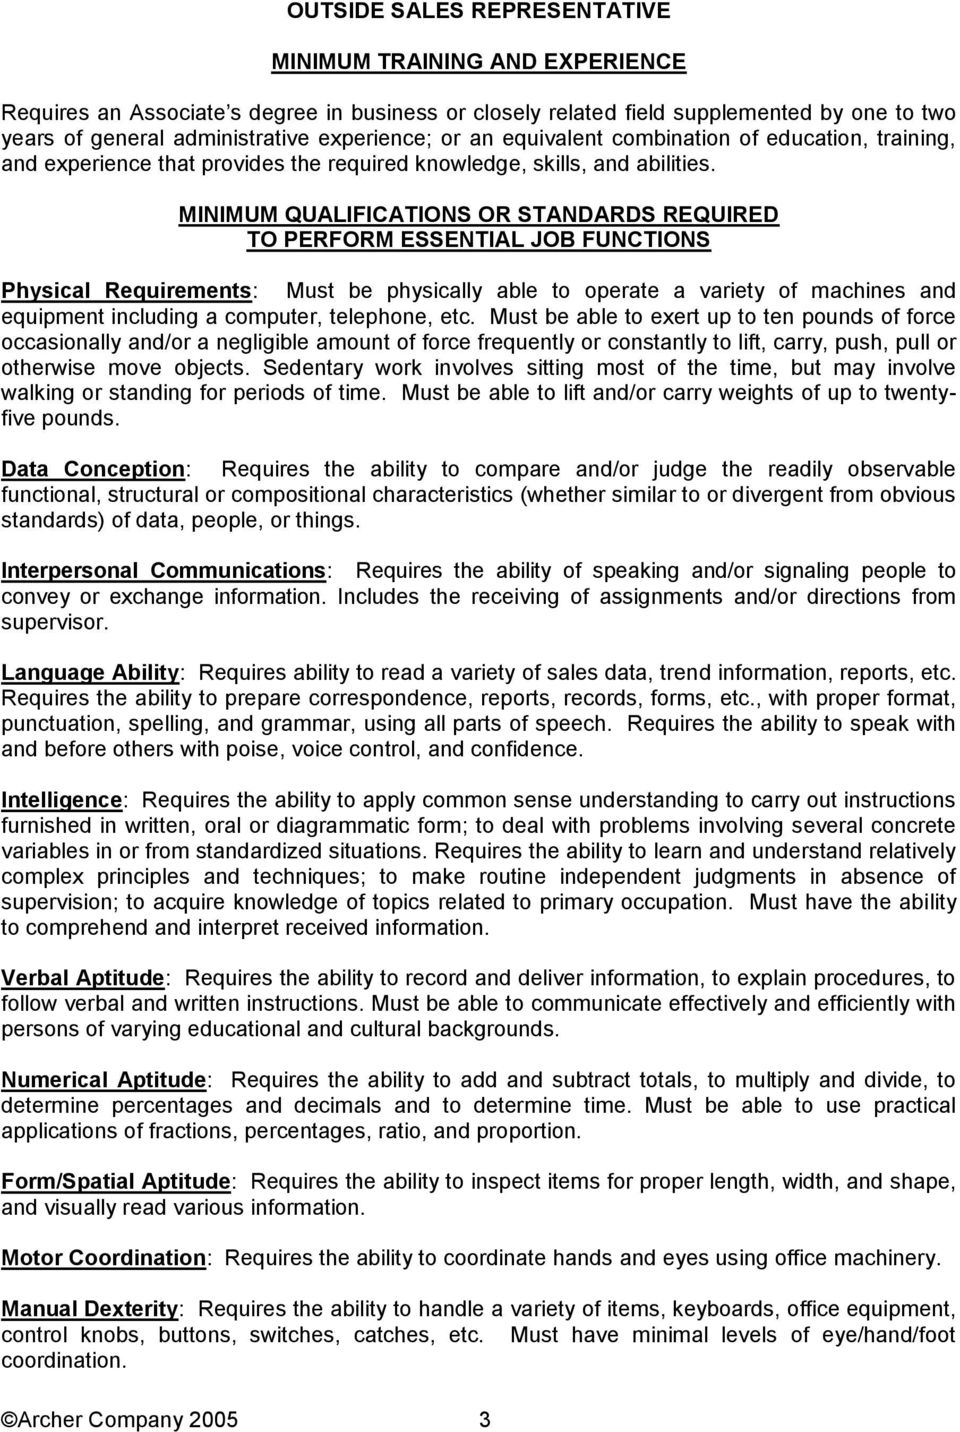 MINIMUM QUALIFICATIONS OR STANDARDS REQUIRED TO PERFORM ESSENTIAL JOB FUNCTIONS Physical Requirements: Must be physically able to operate a variety of machines and equipment including a computer,